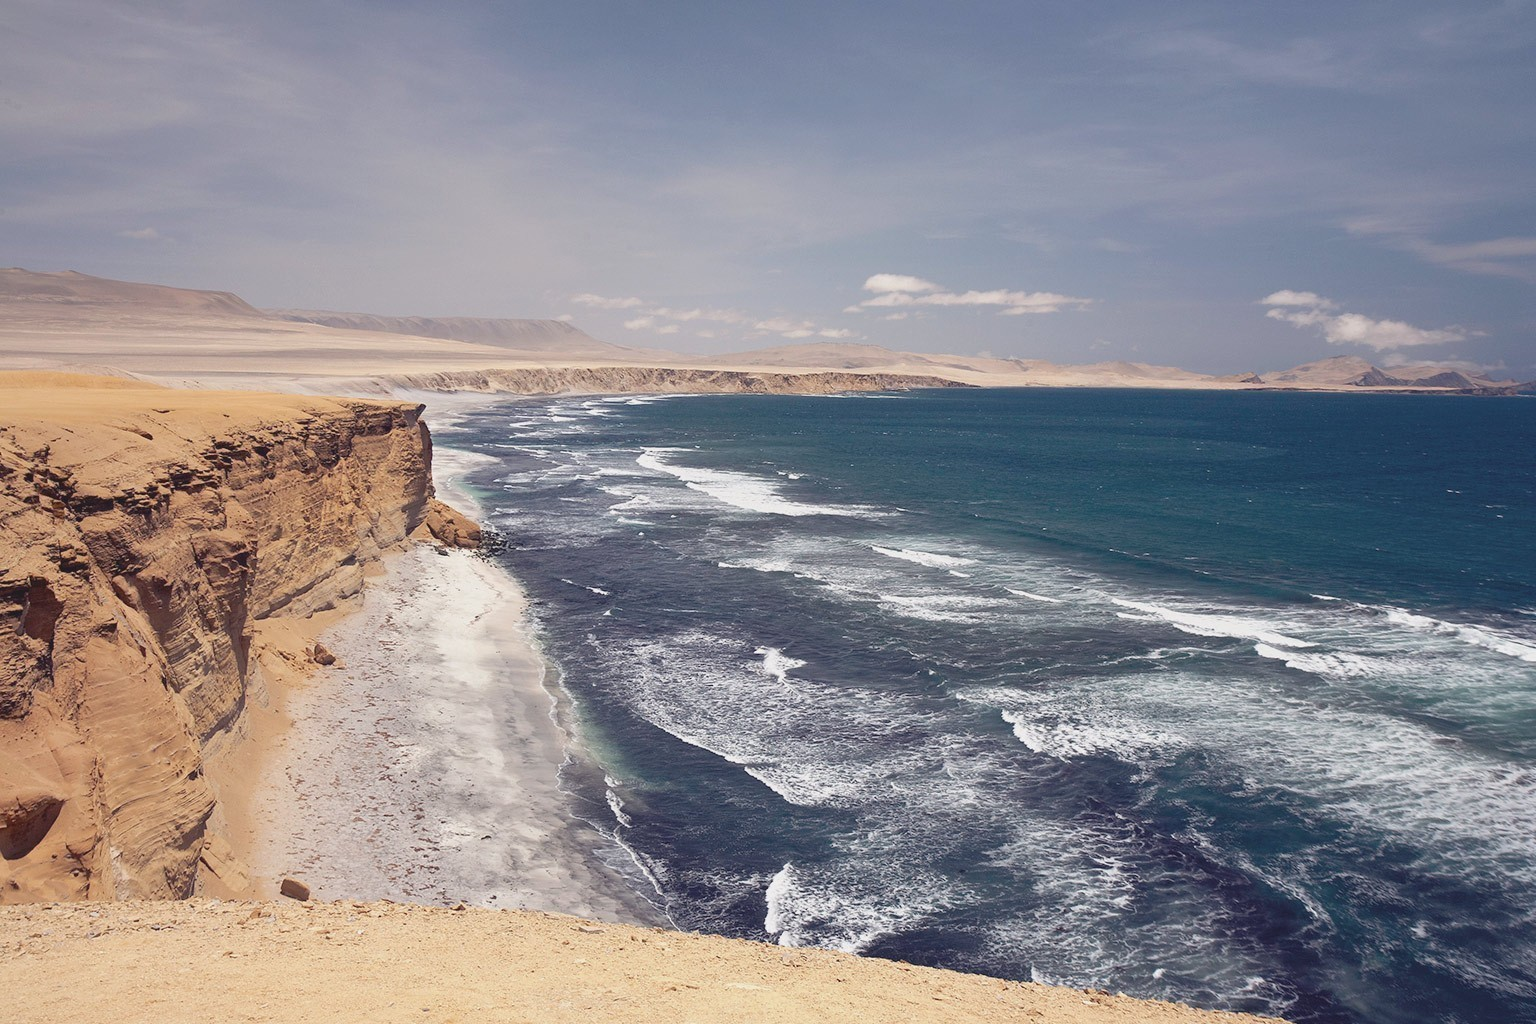 Luxury collection hotel paracas in peru designreisen for Luxury collection paracas